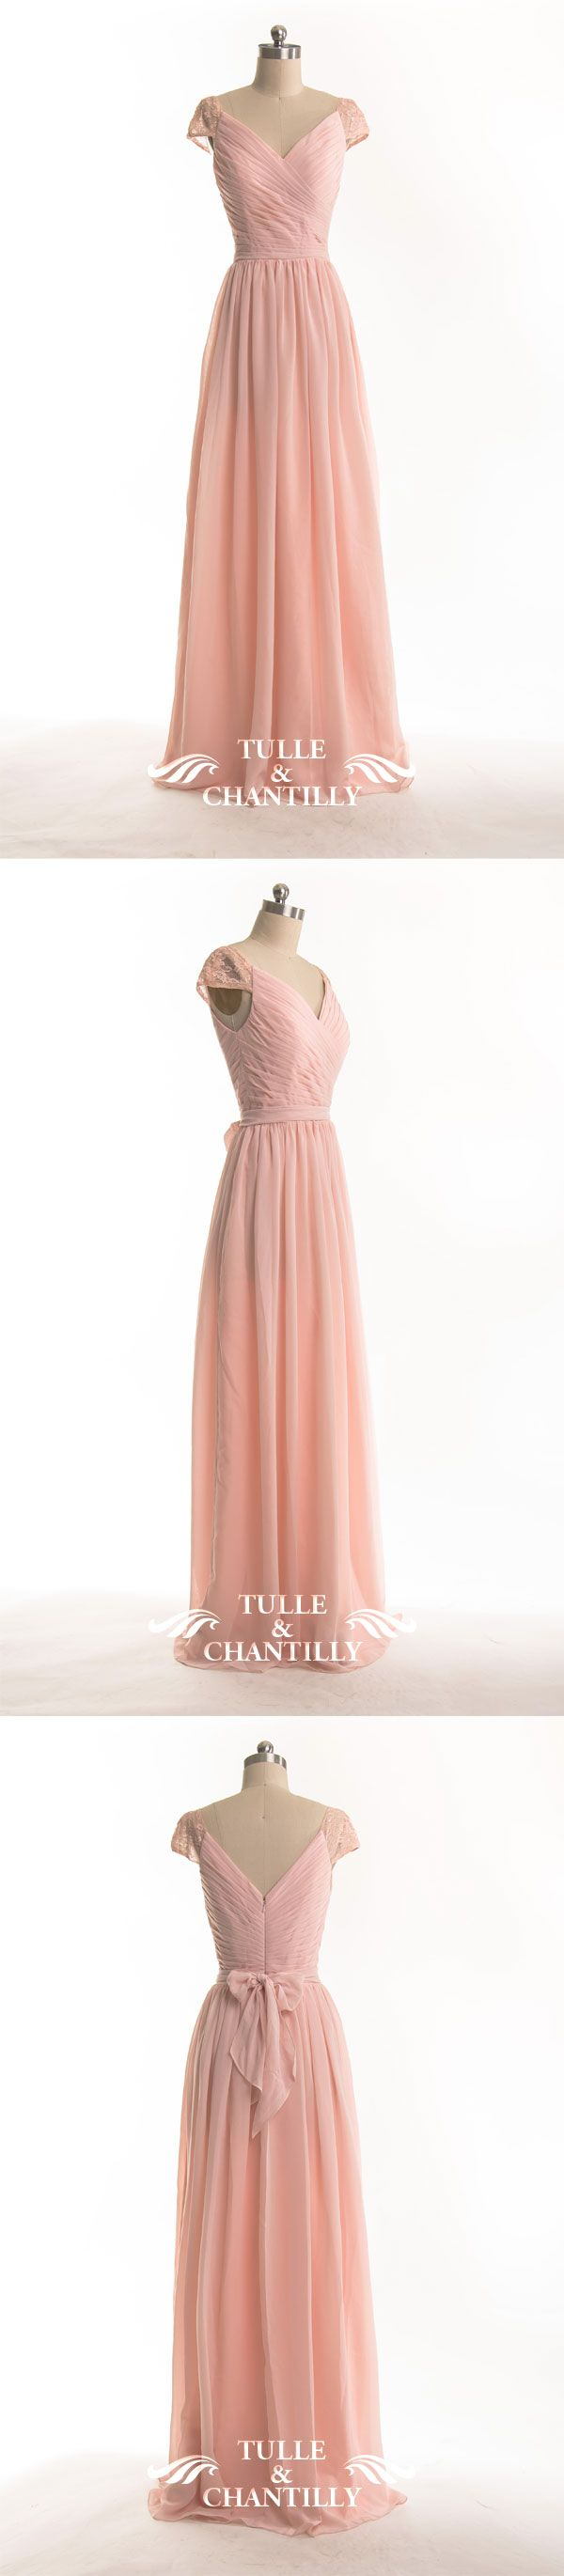 pink bridesmaid dresses with lace cap sleeves